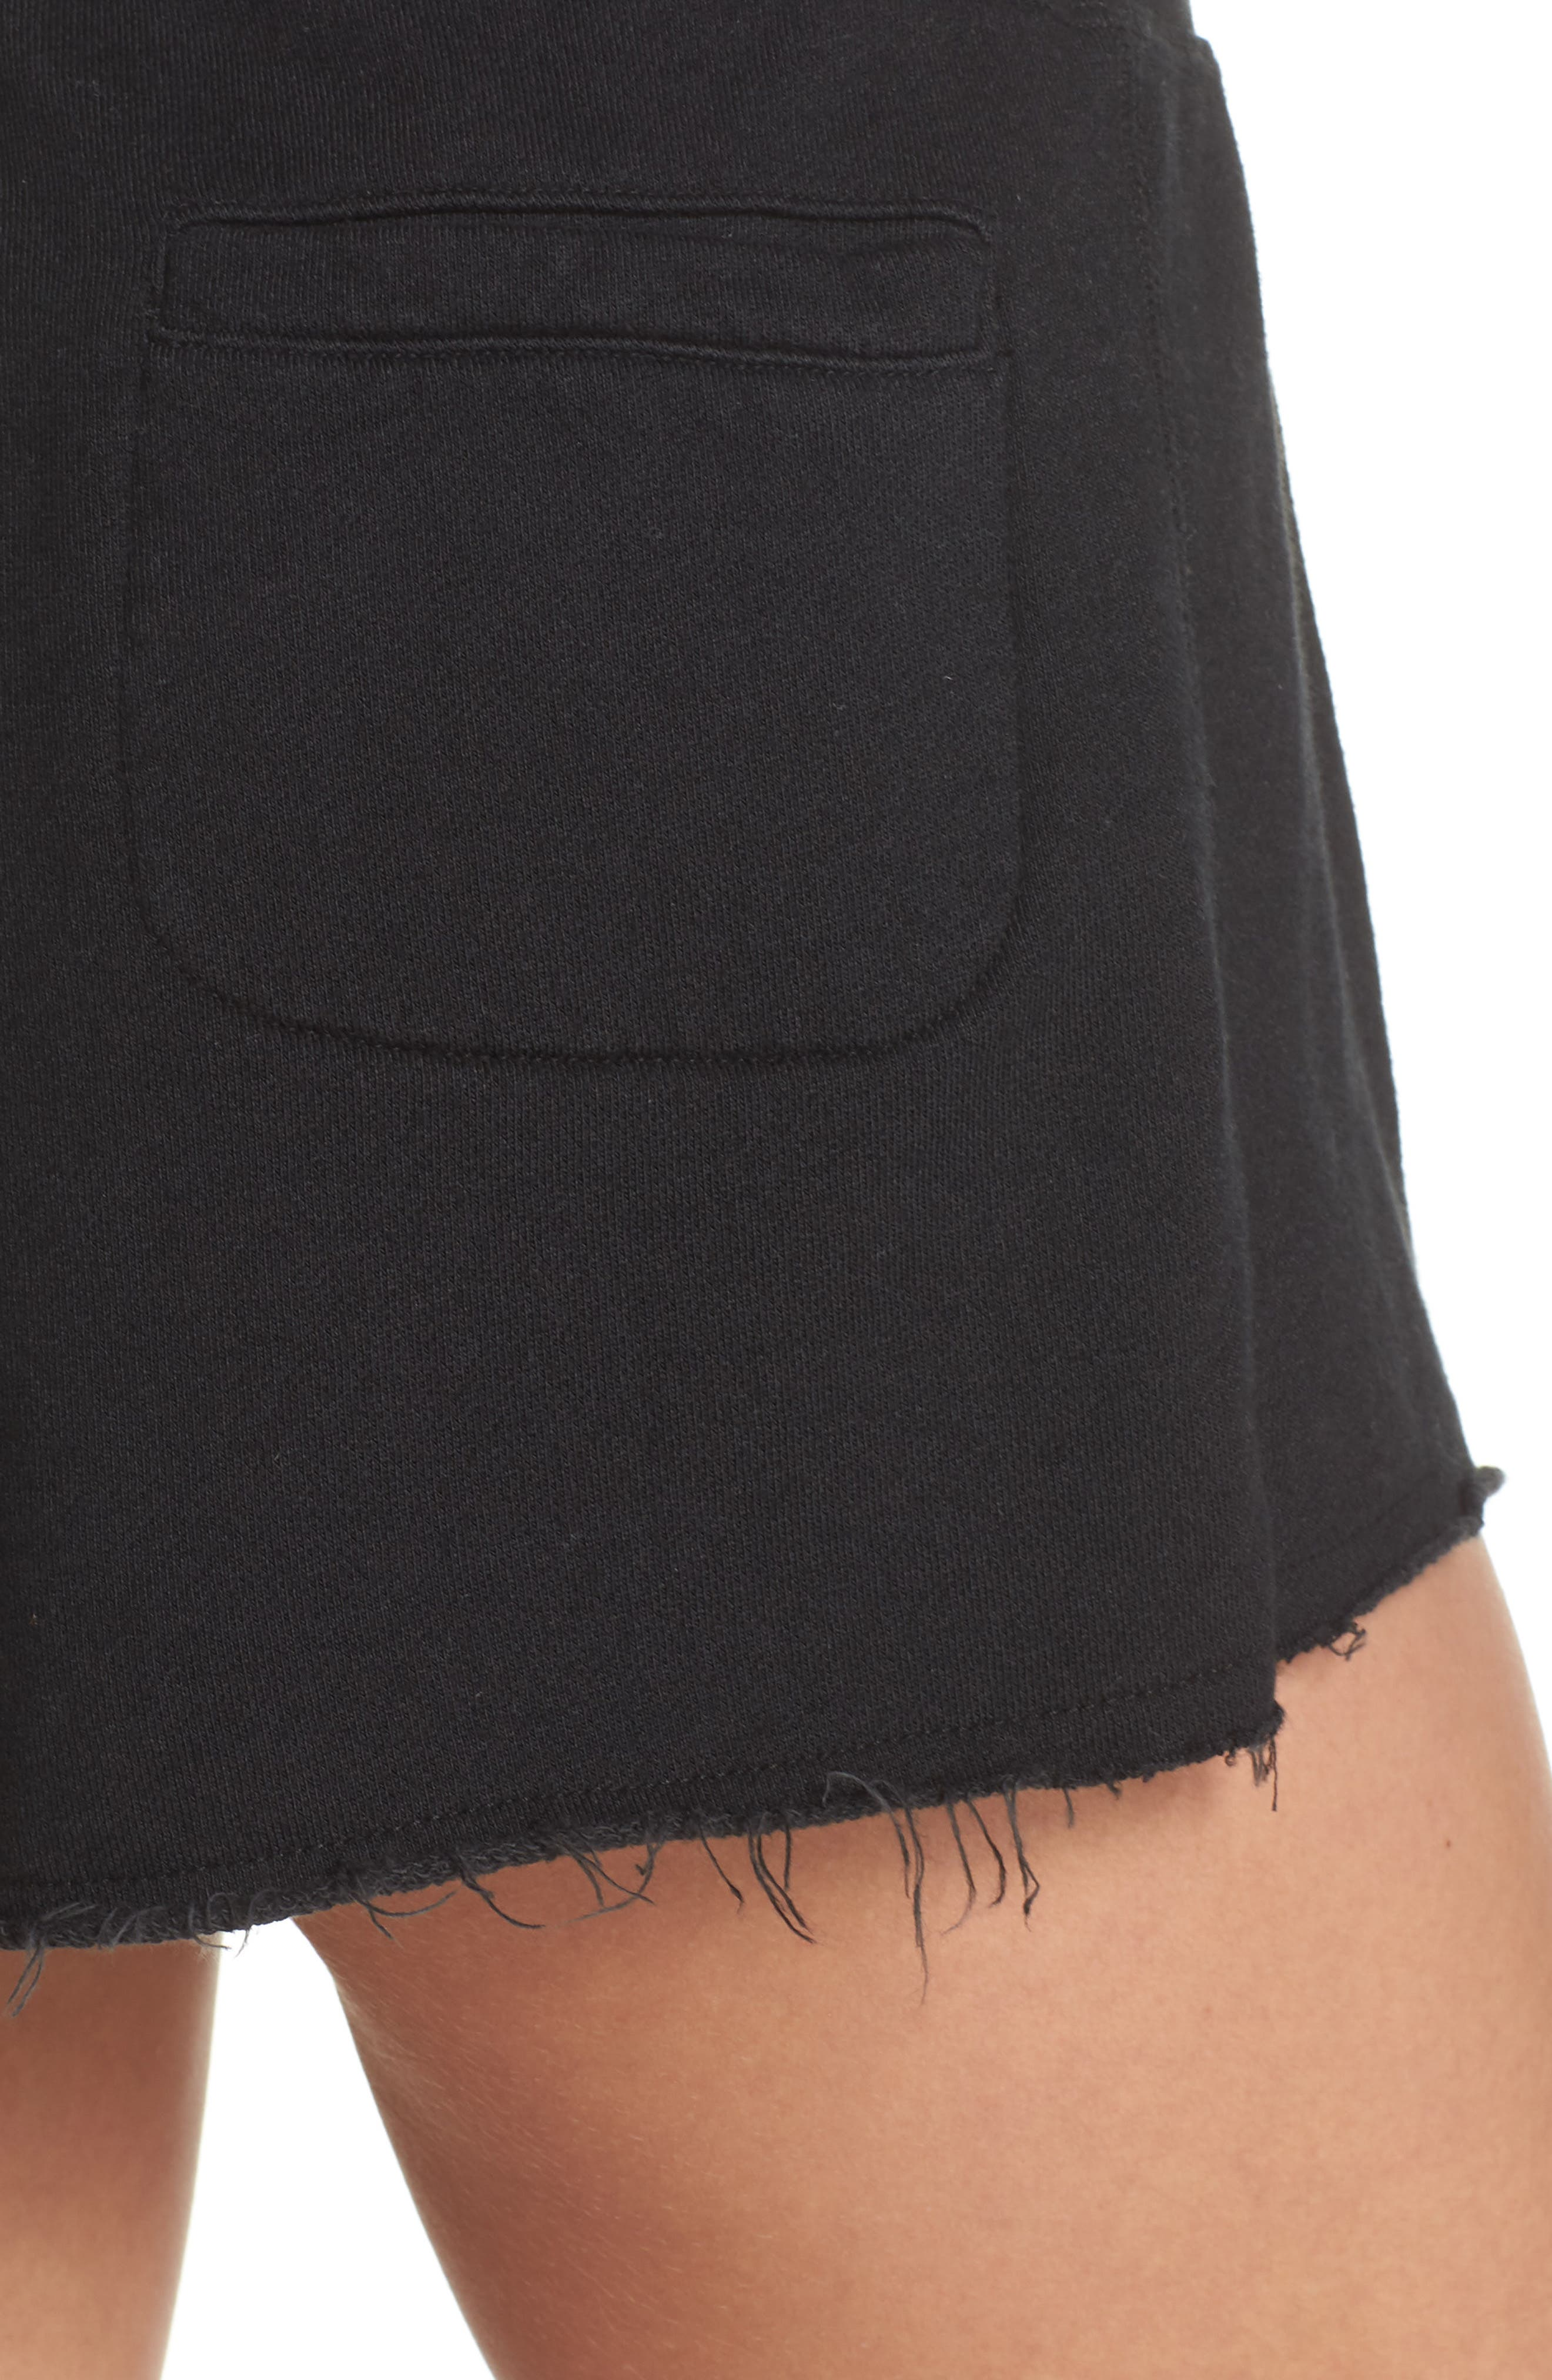 French Terry Sleep Shorts,                             Alternate thumbnail 5, color,                             Faded Black